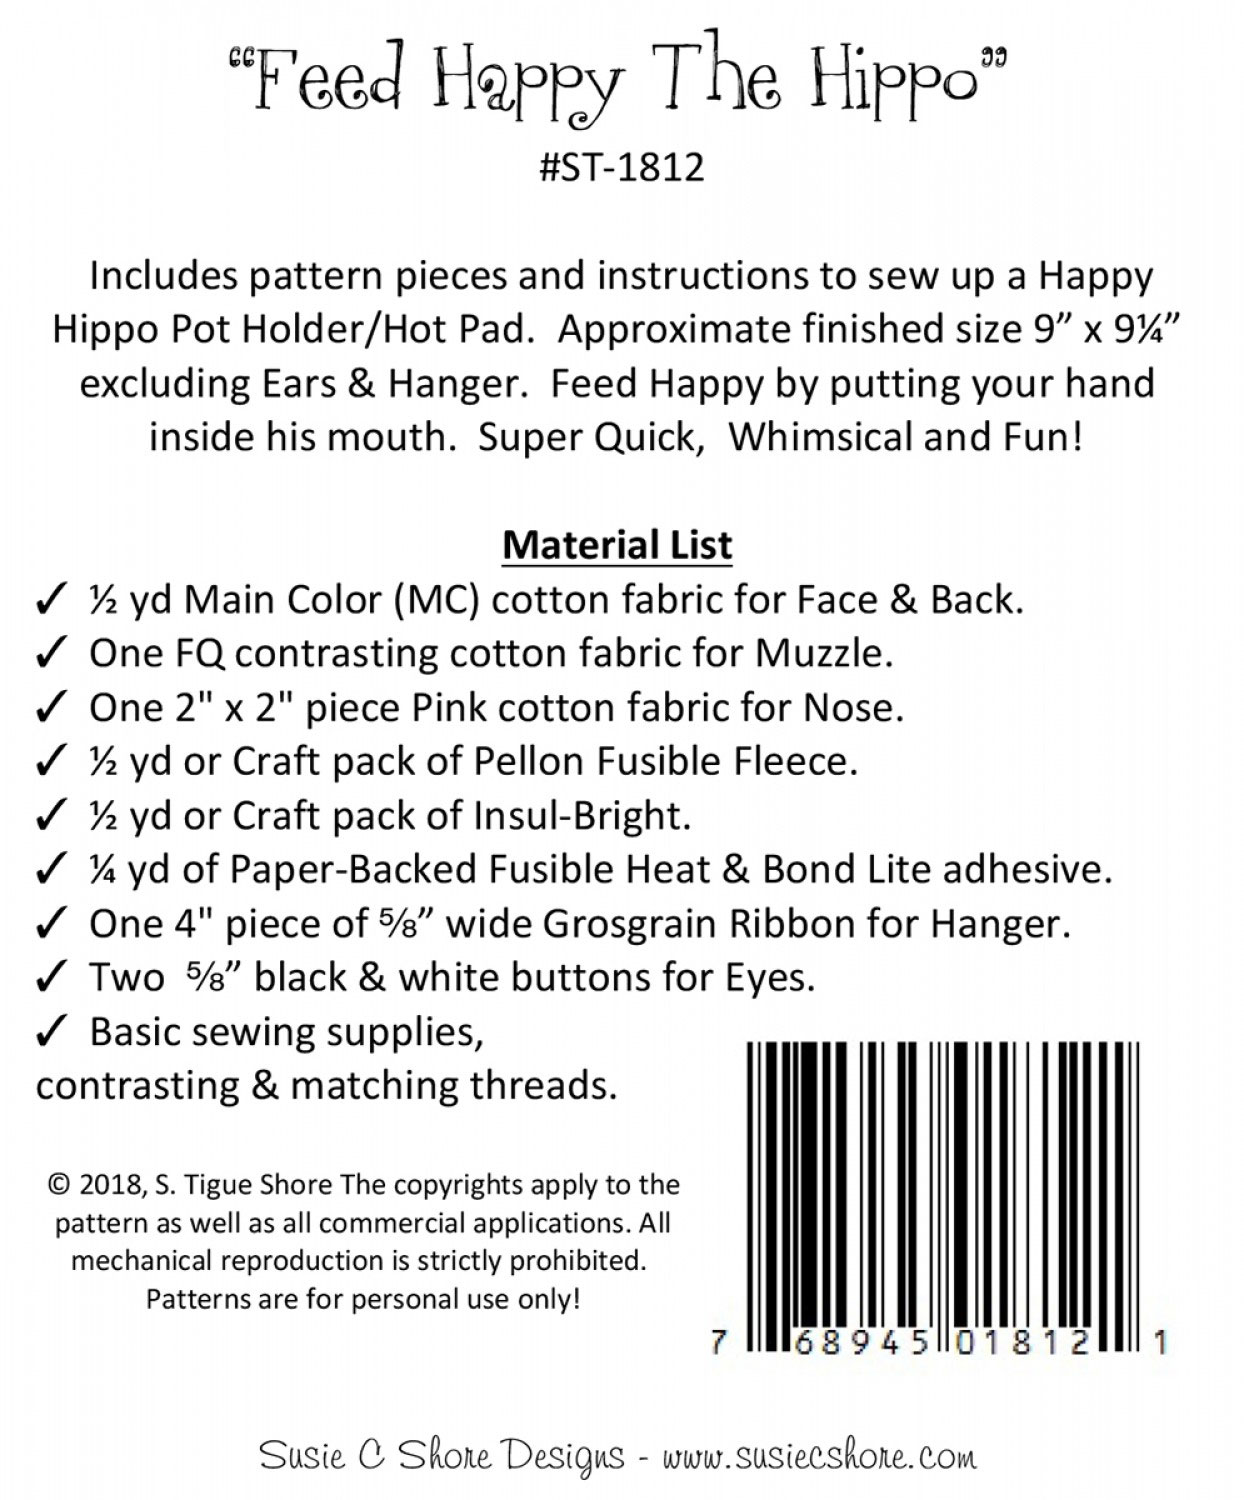 Feed-Happy-The-Hippo-sewing-pattern-Susie-C-Shore-back